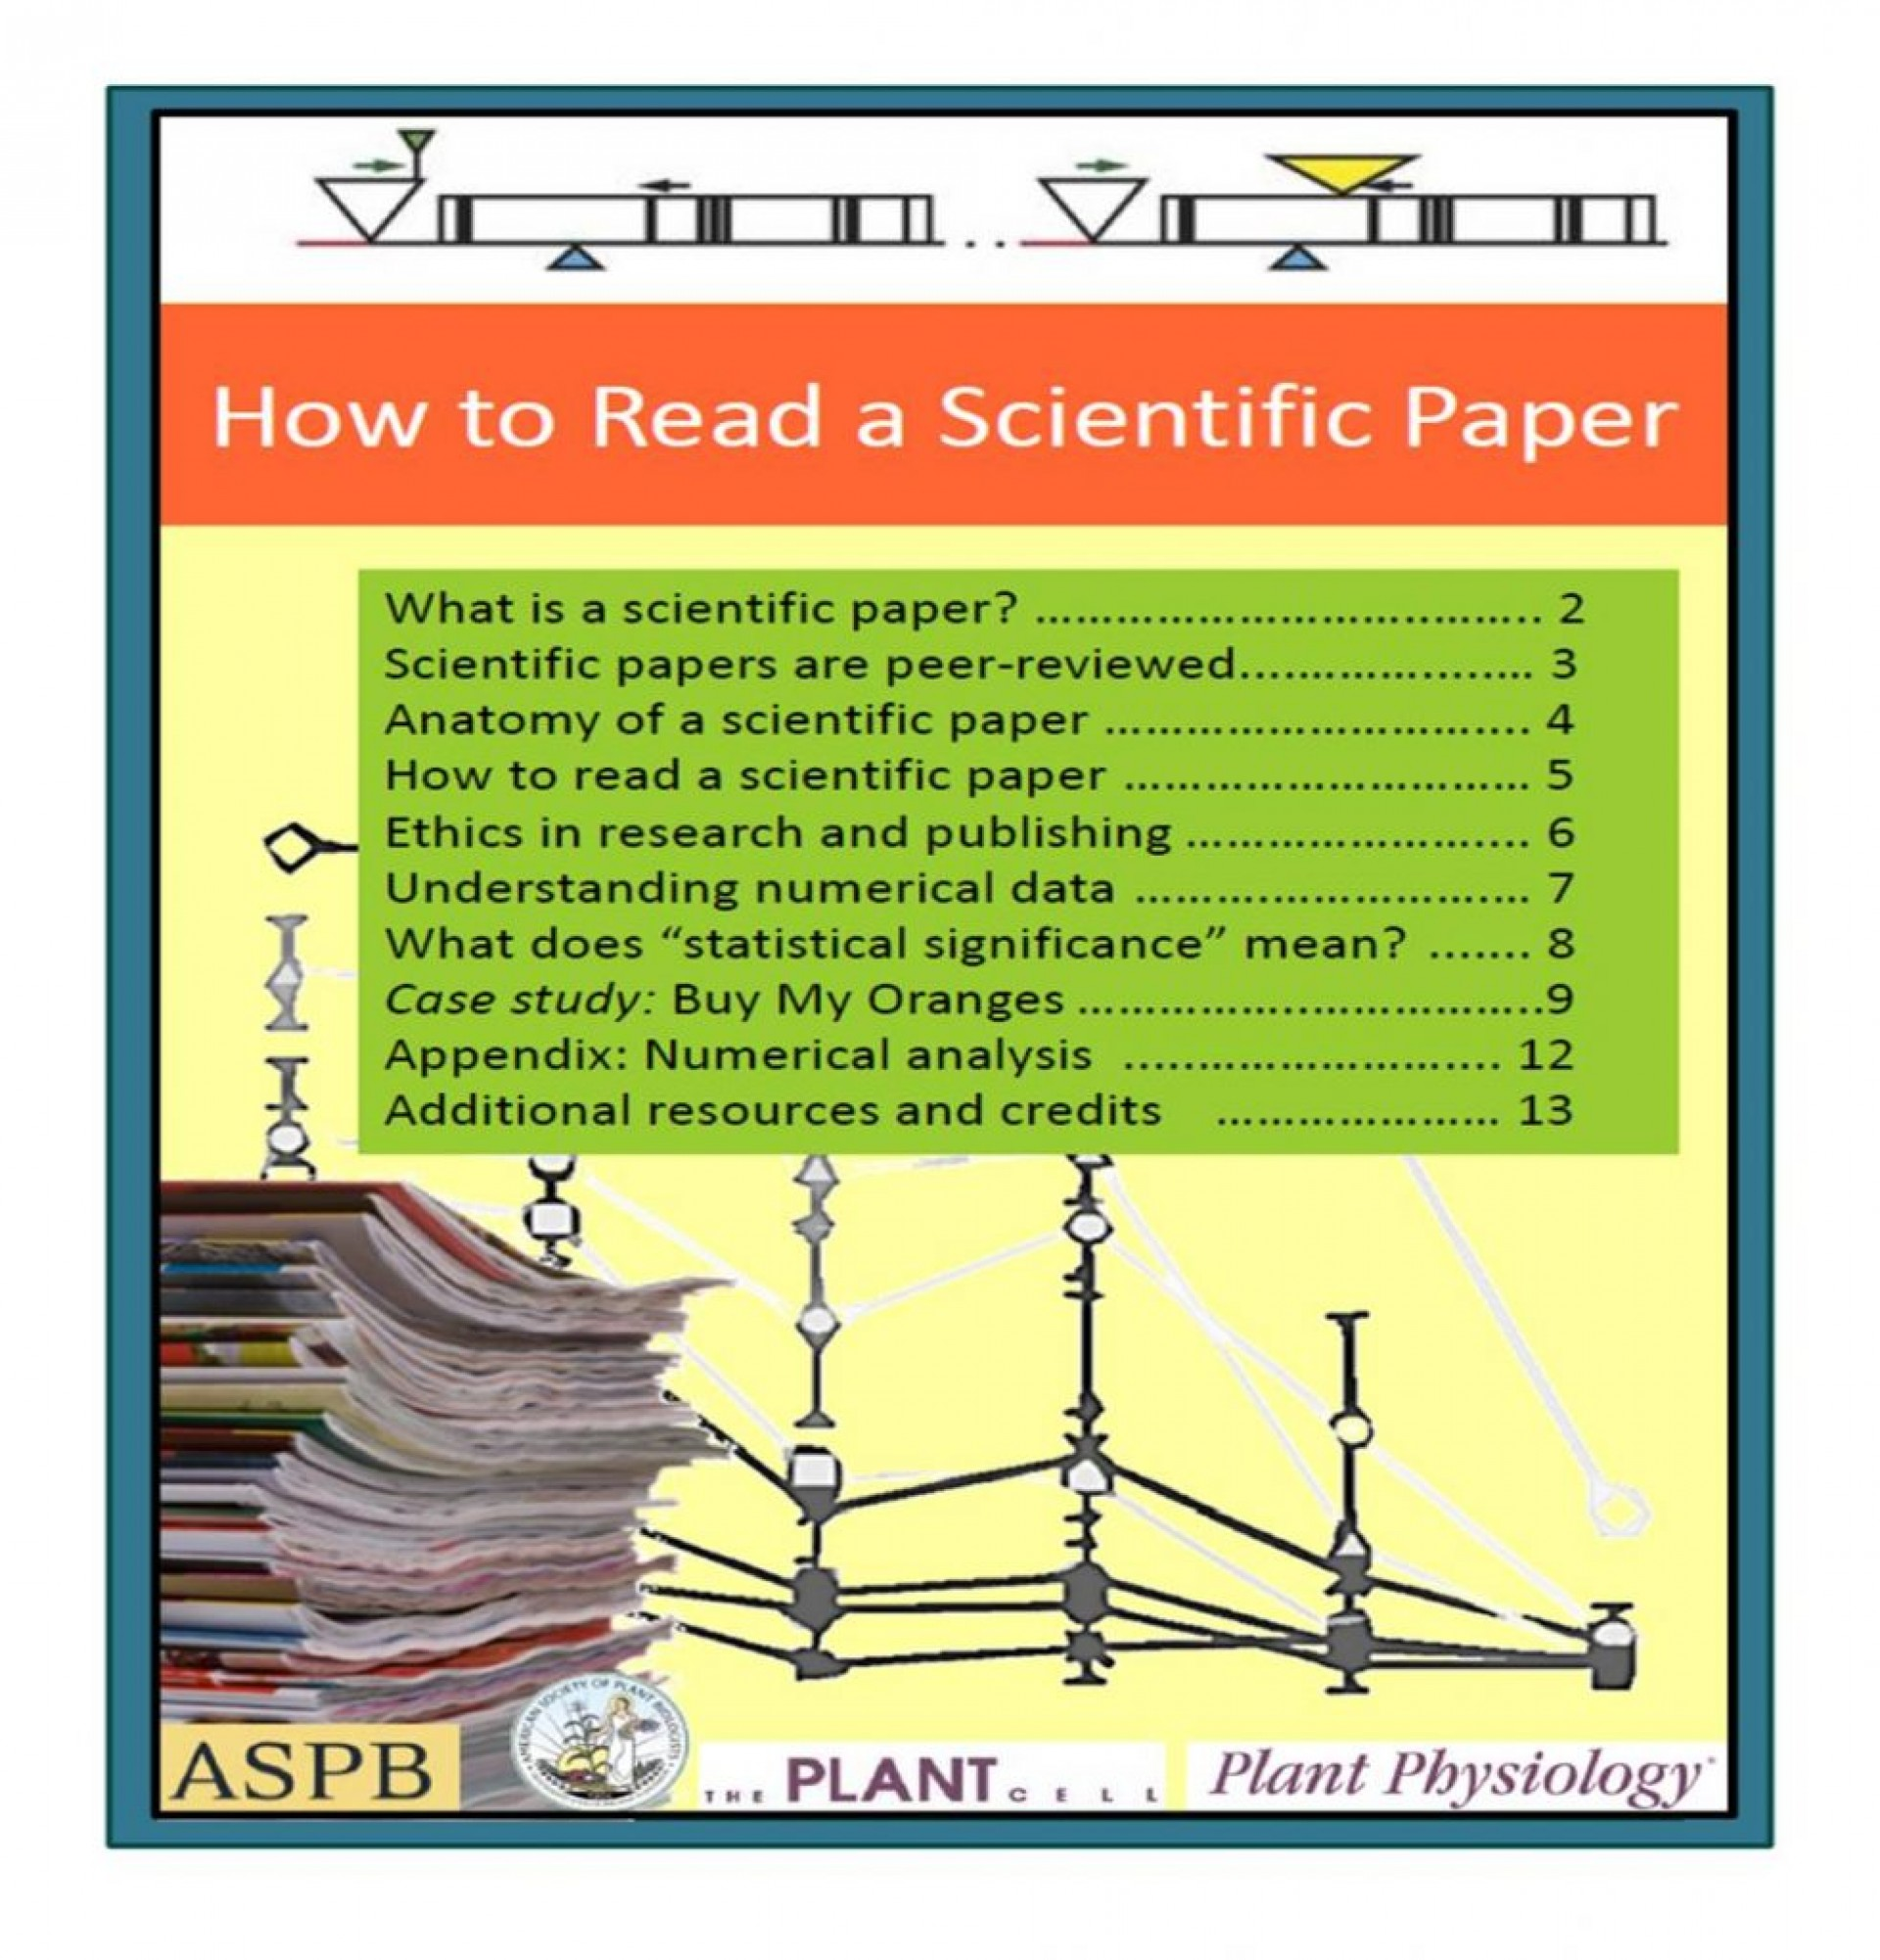 008 Picture1 982x1024 Data Science Researchs Pdf Sensational Research Papers 2018 1920